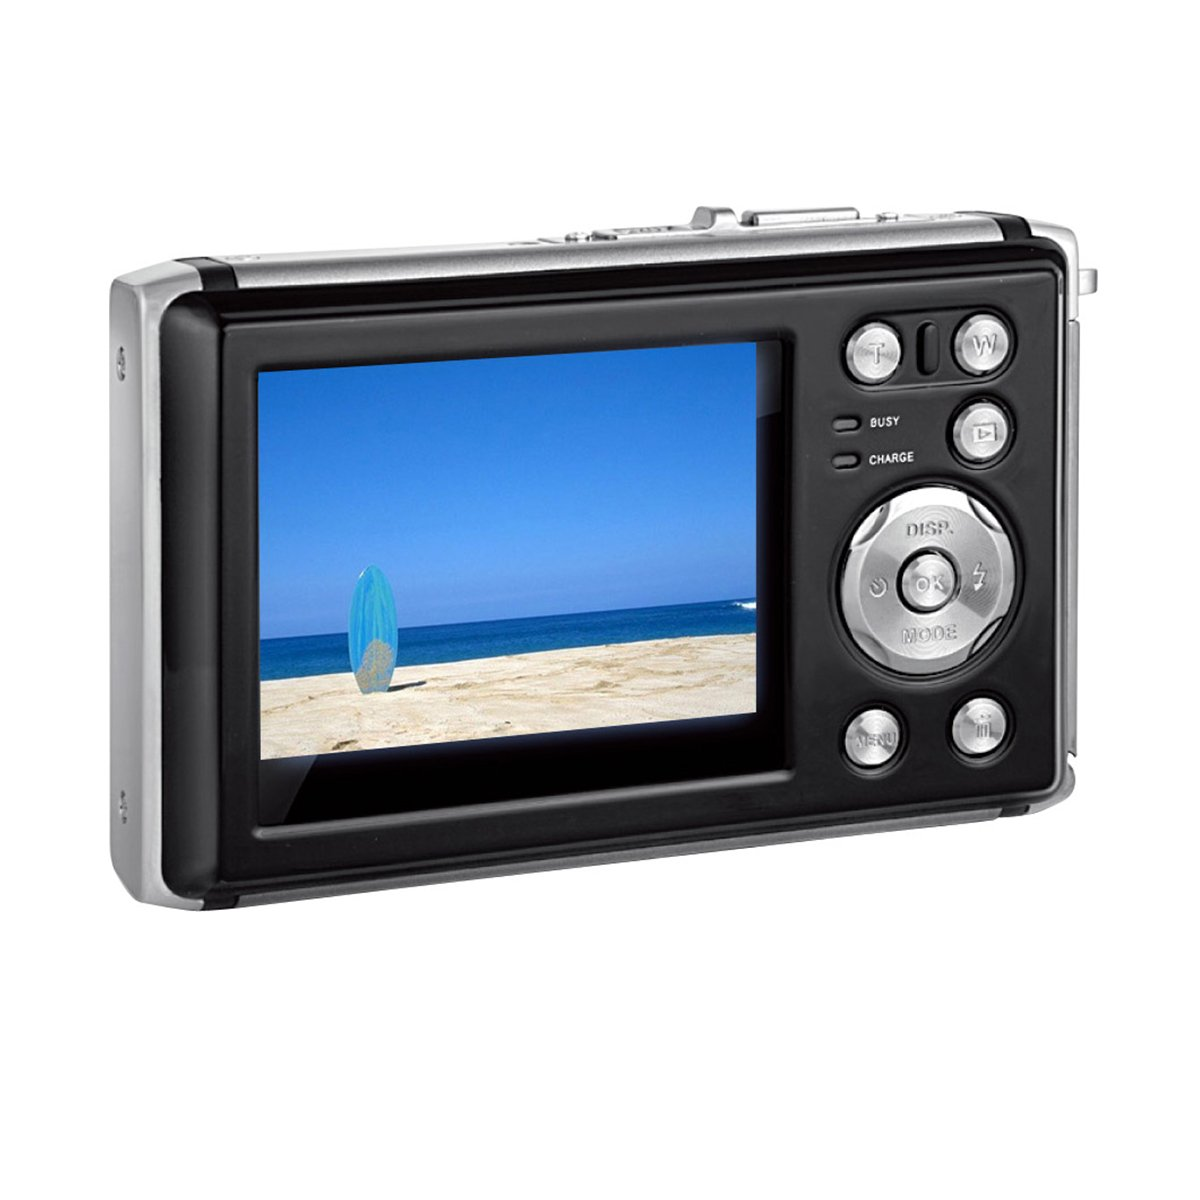 "Heegomn Digital Camera Ultra HD 24M Resolution Waterproof Camera 2.4"" LCD Video Camera with Wide Angle Len"